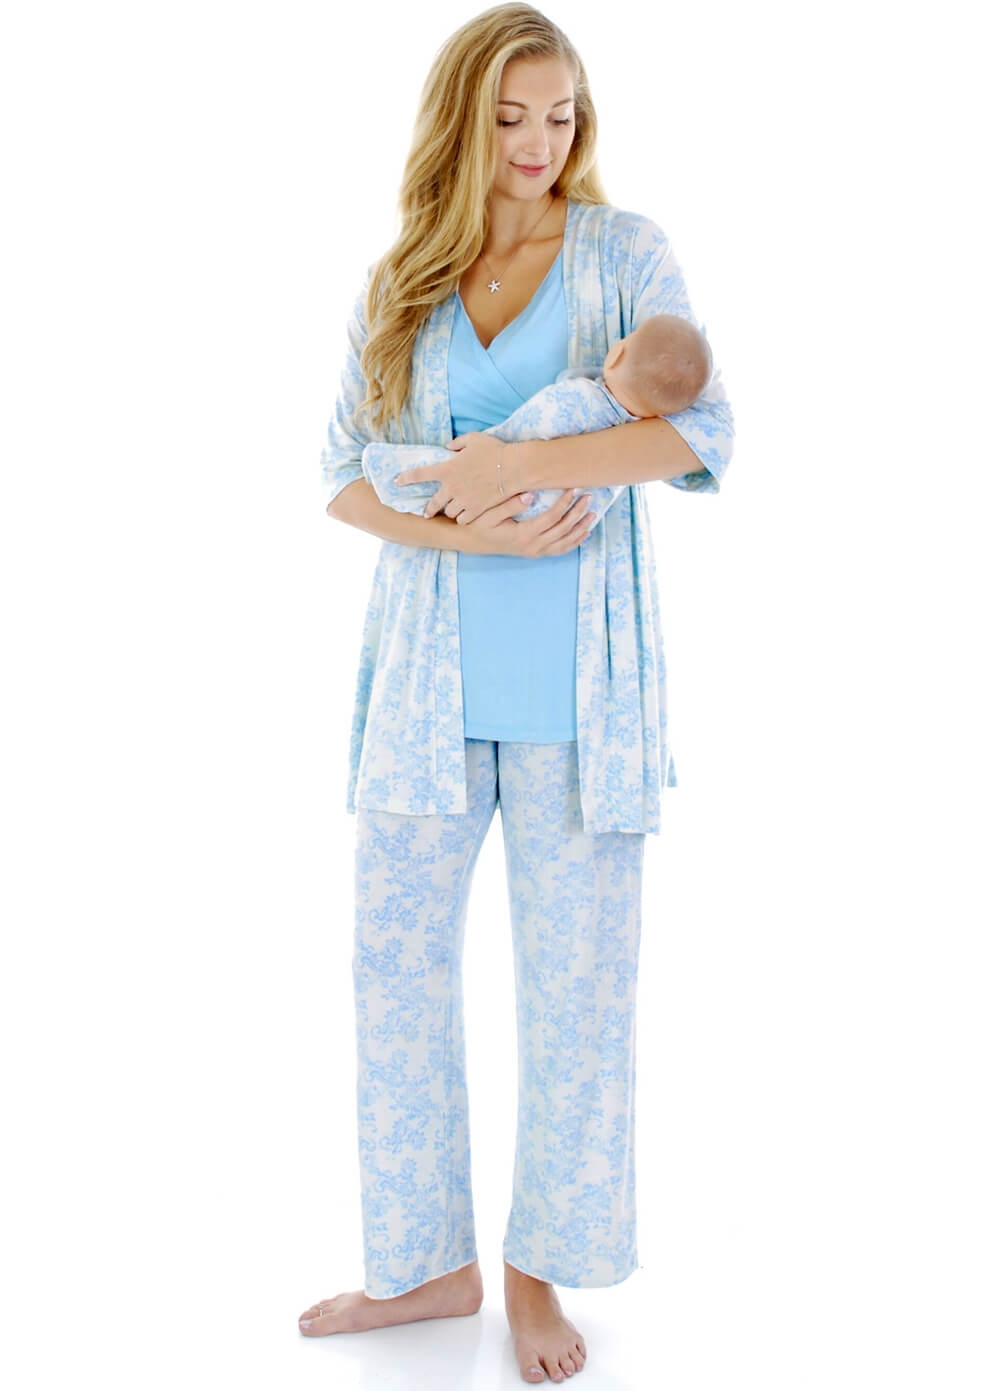 Everly Grey - Roxanne Mommy & Me PJ Gift Set in Blue Chantilly